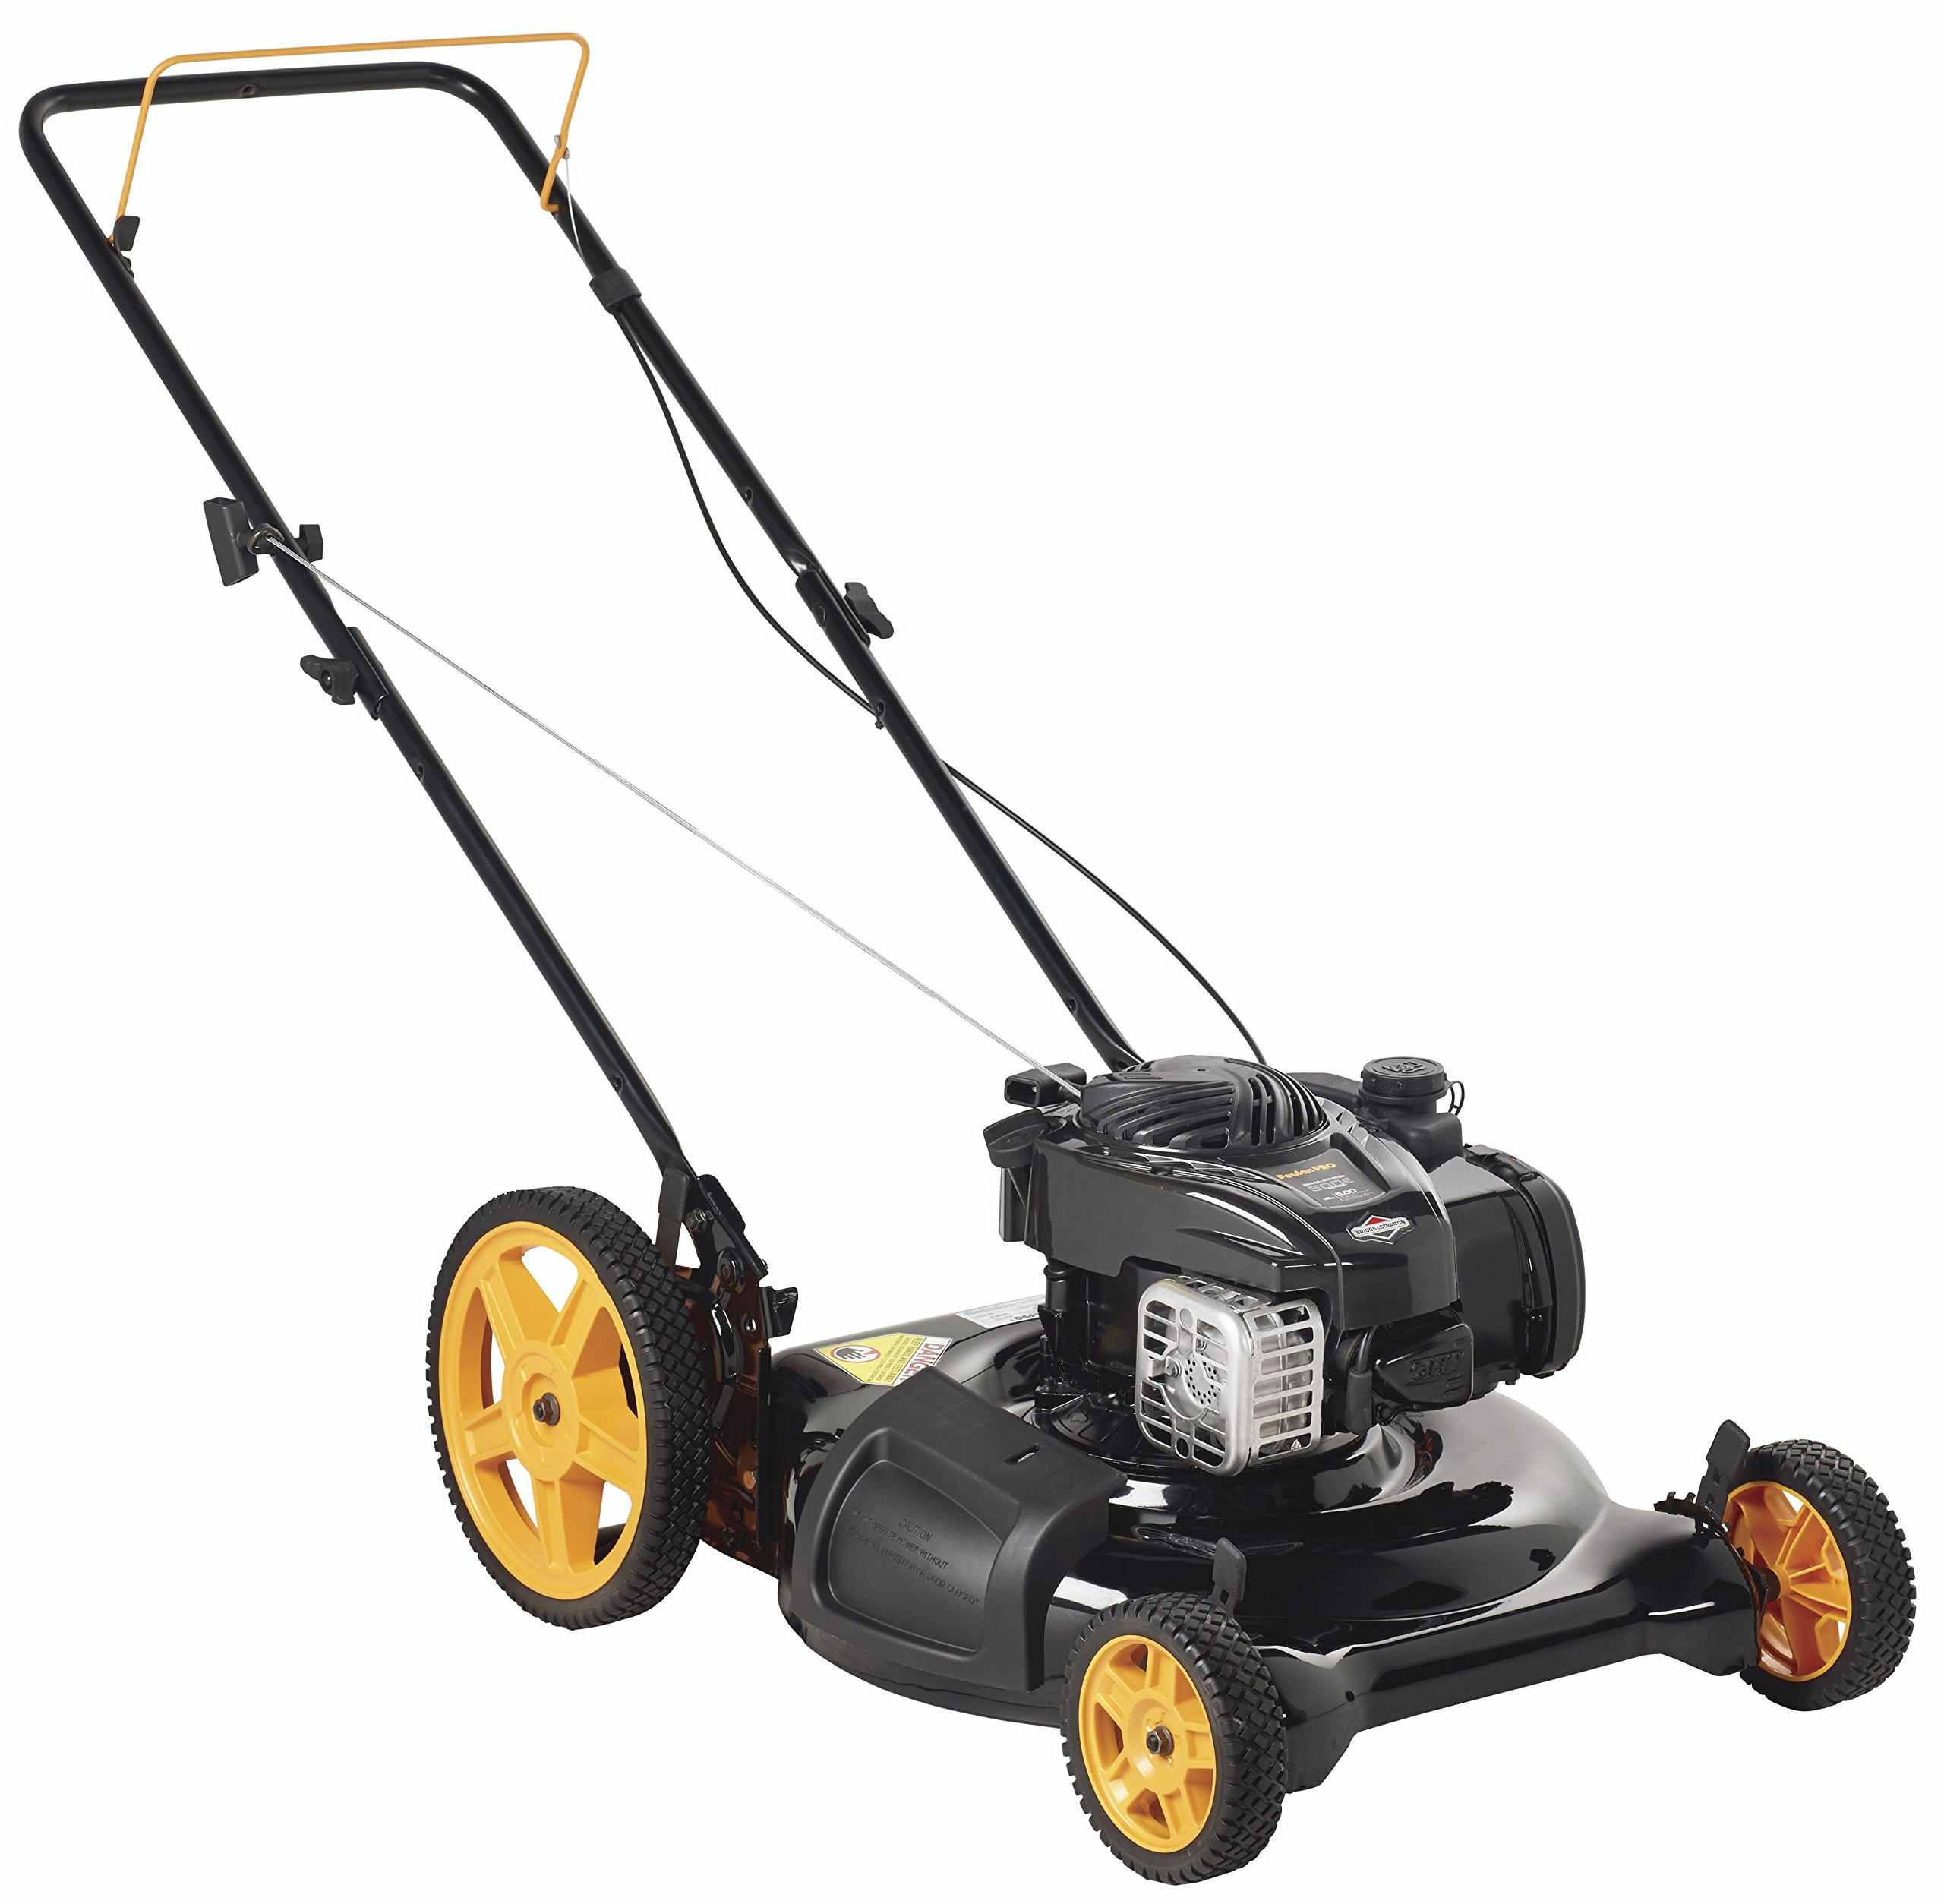 Poulan Pro 961120134 PR500N21SH Briggs 500ex Side Discharge/Mulch 2-in-1 Hi-Wheel Push Mower in 21-Inch Deck, 11-inch wheels